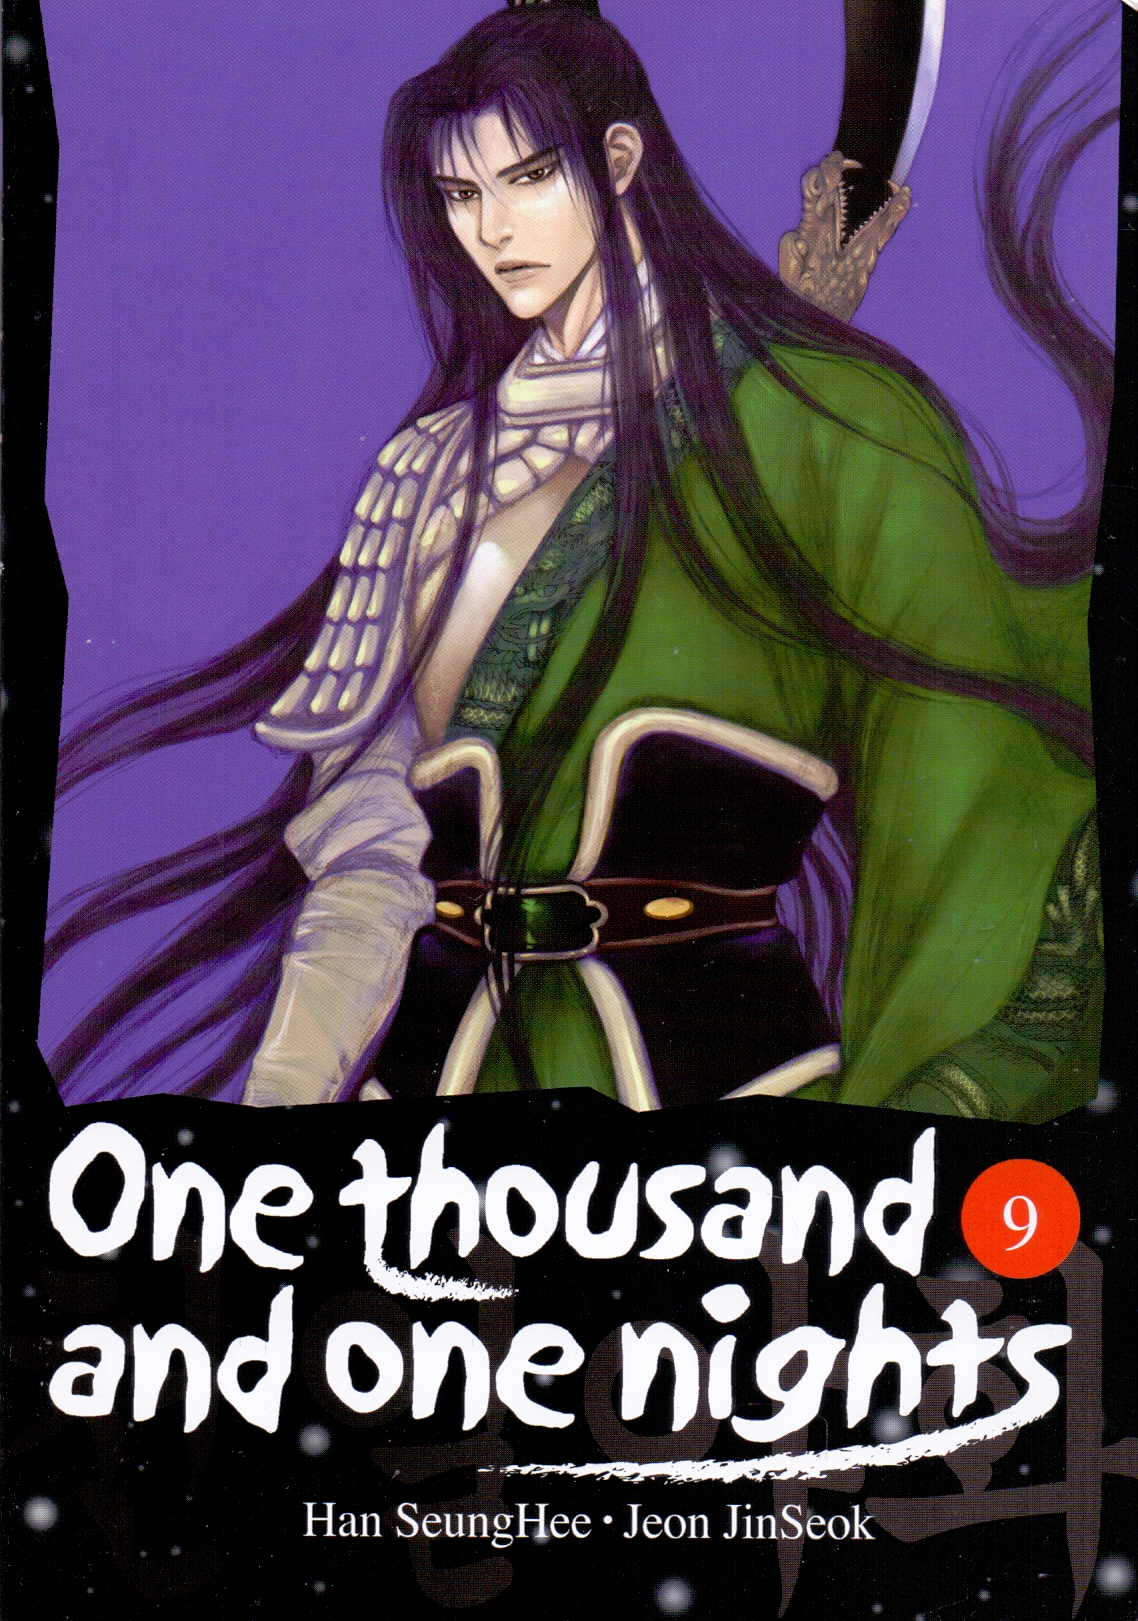 One thousand and one nights Vol. 9 - Han SeungHee [Paperback]